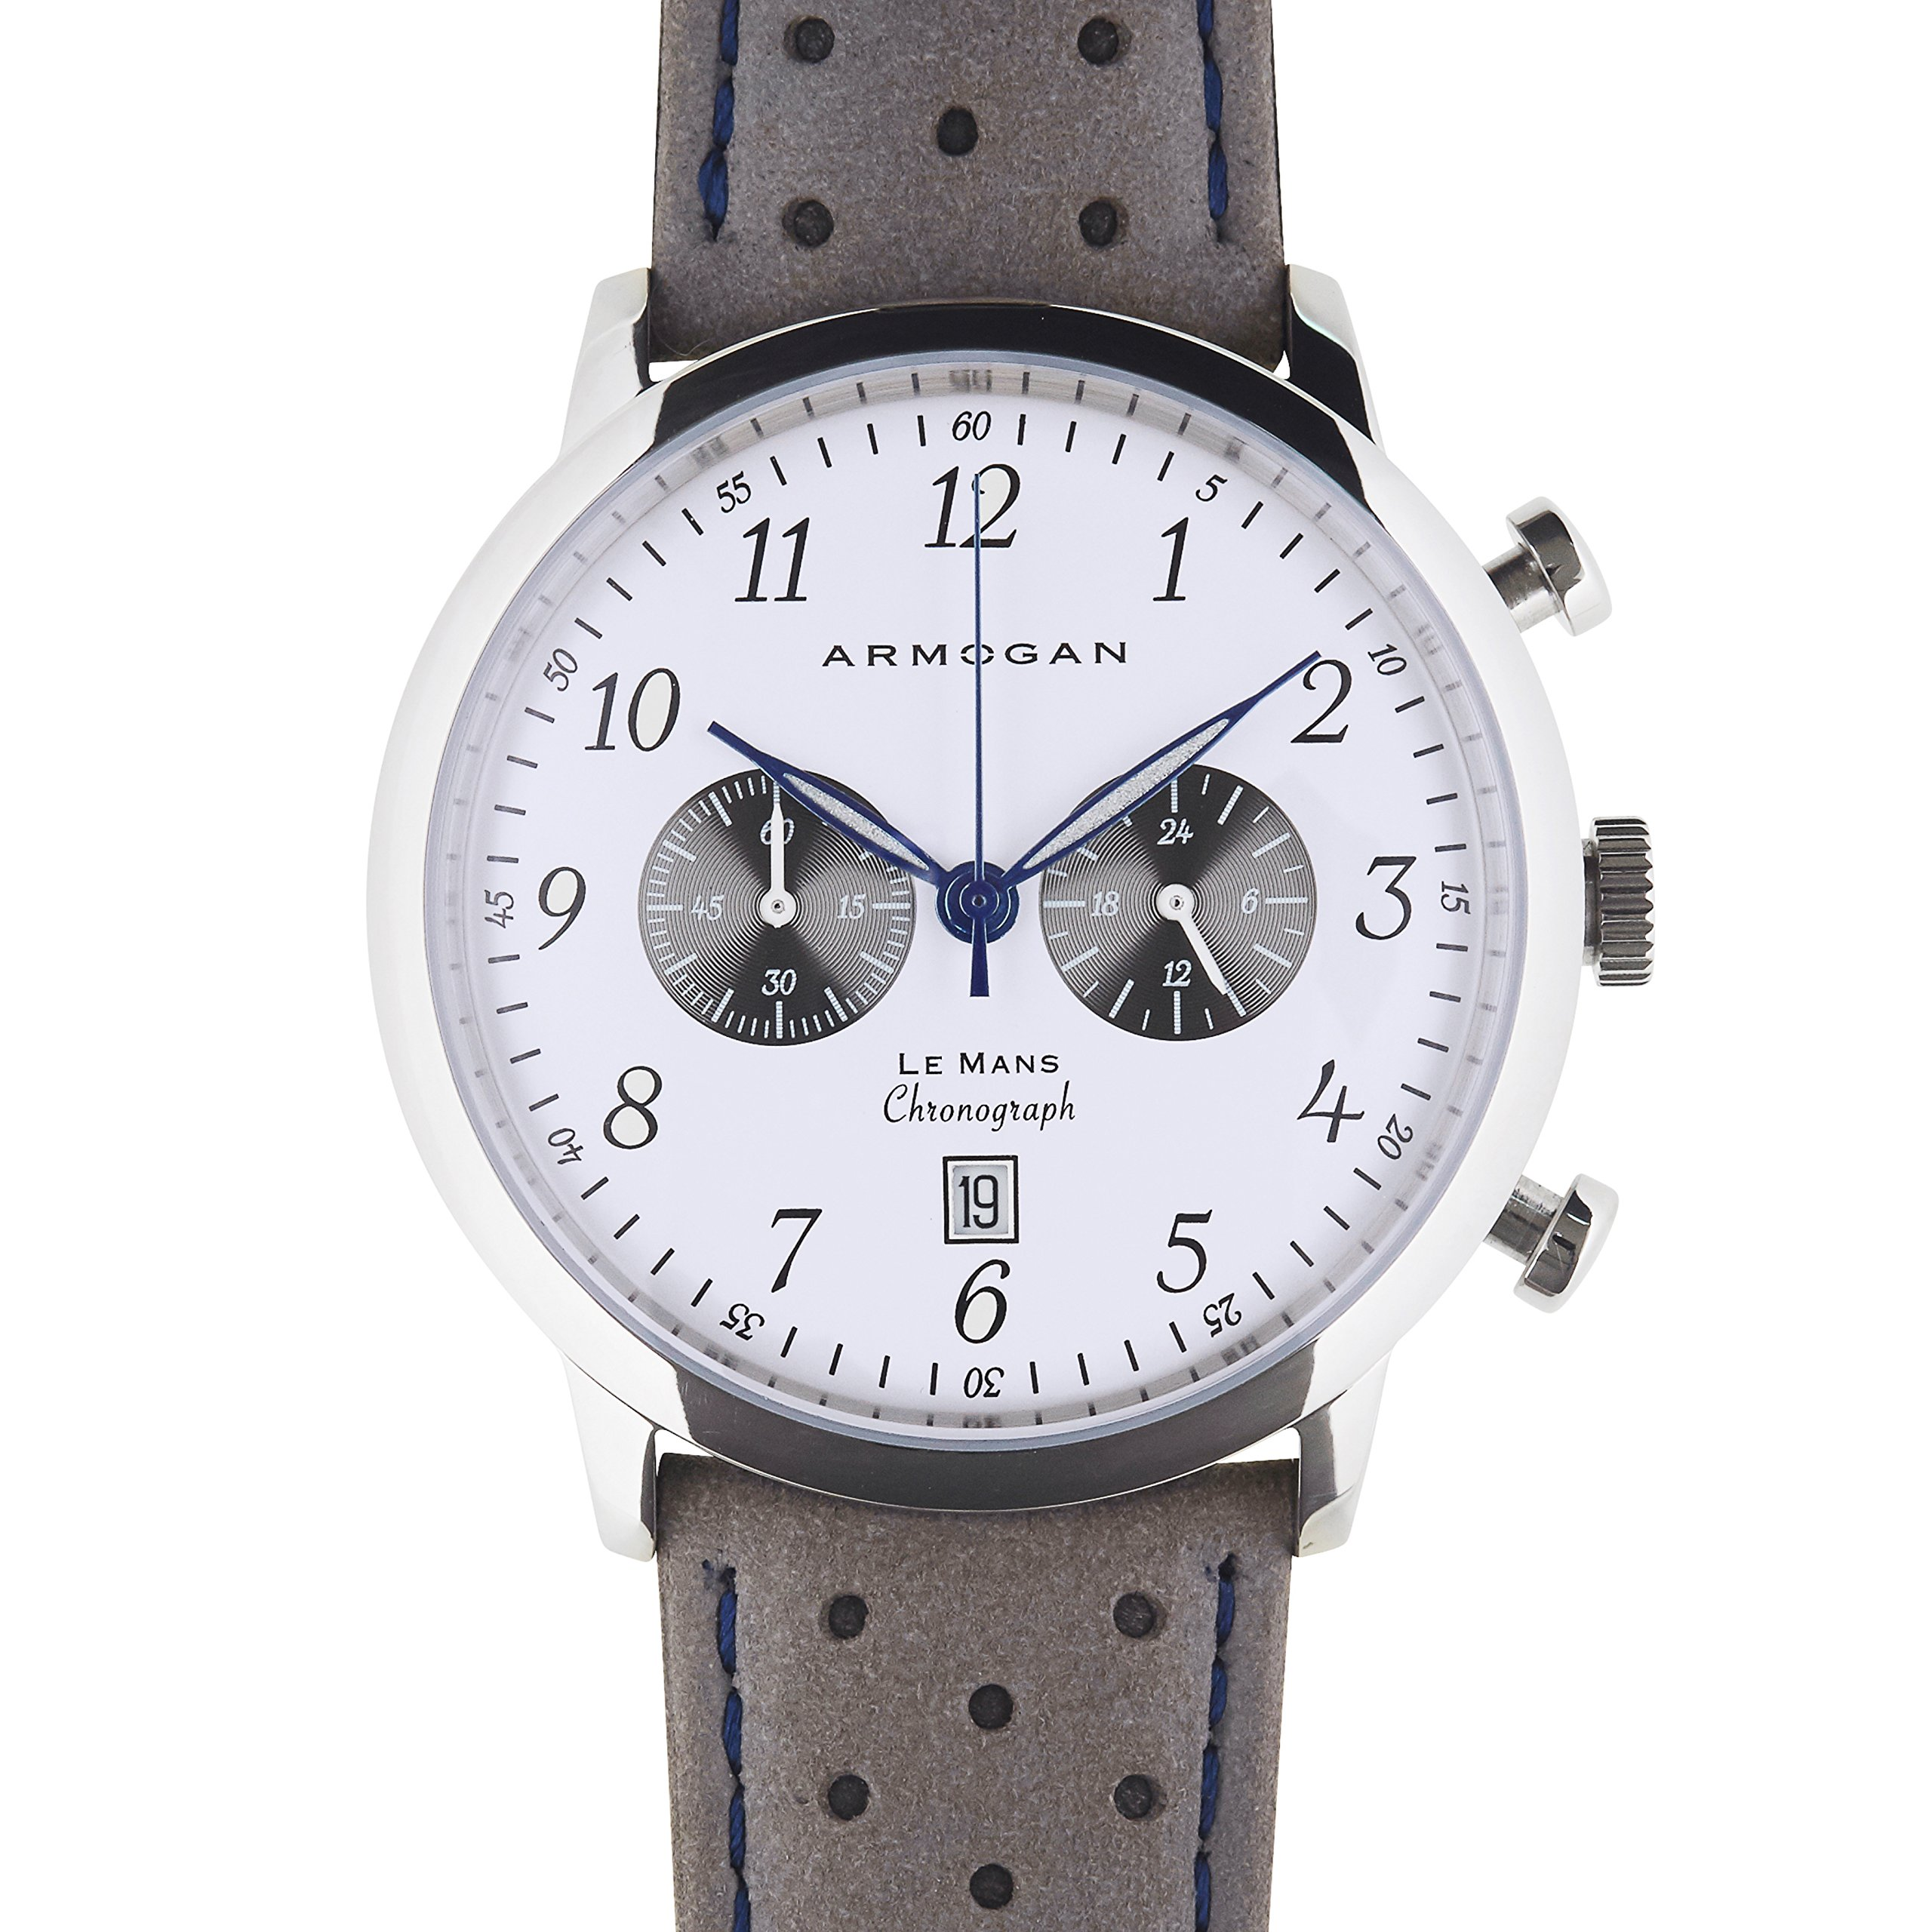 Armogan Le Mans - Moon White C90 - Men's Chronograph Watch - Perfored Suede Leather Strap